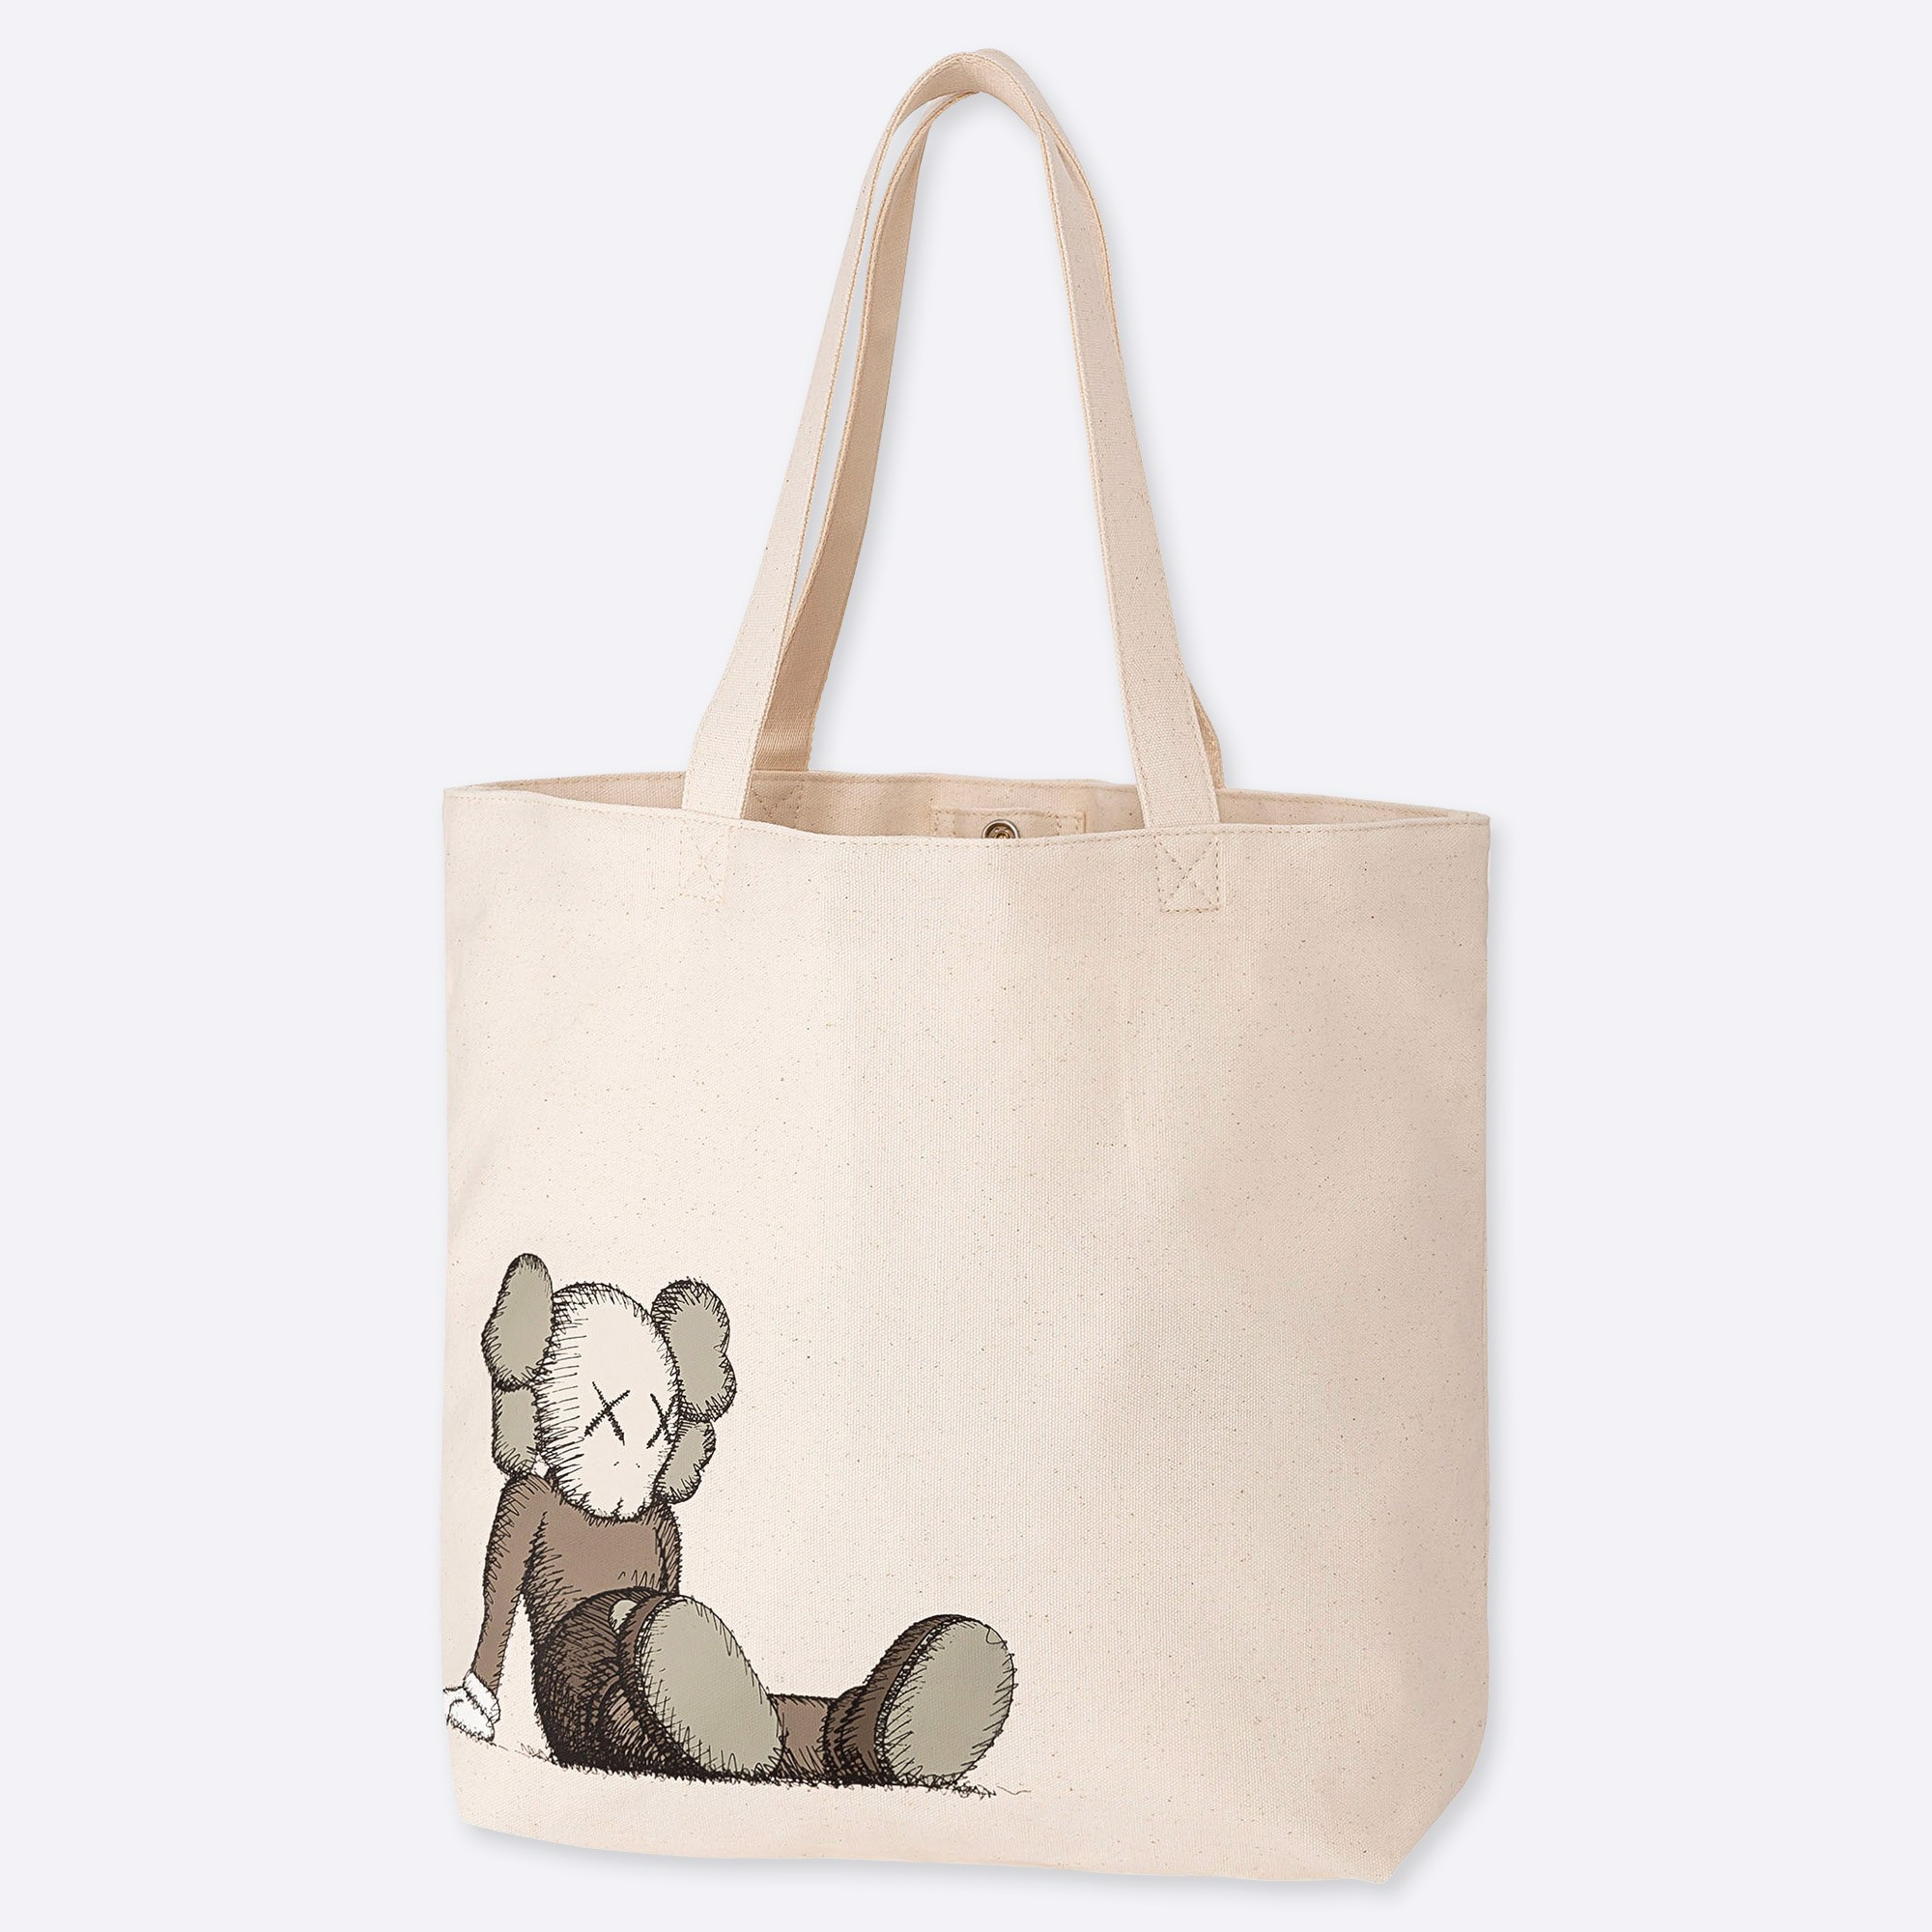 KAWS x Uniqlo Tote Bag 'Grey'